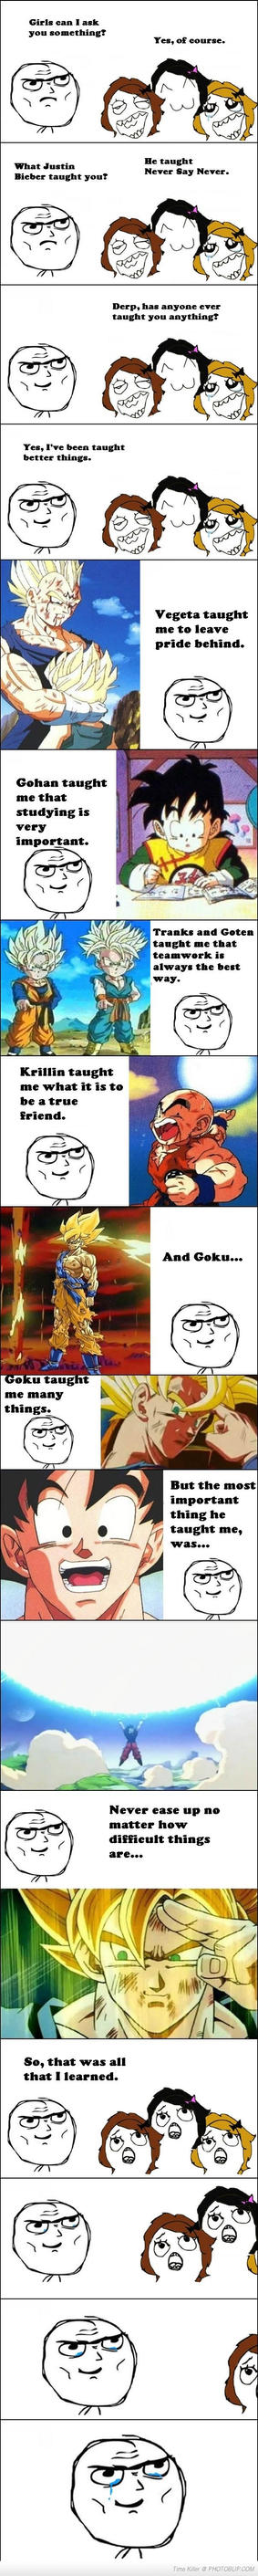 What Dragonball Z Taught Us by jay4gamers1